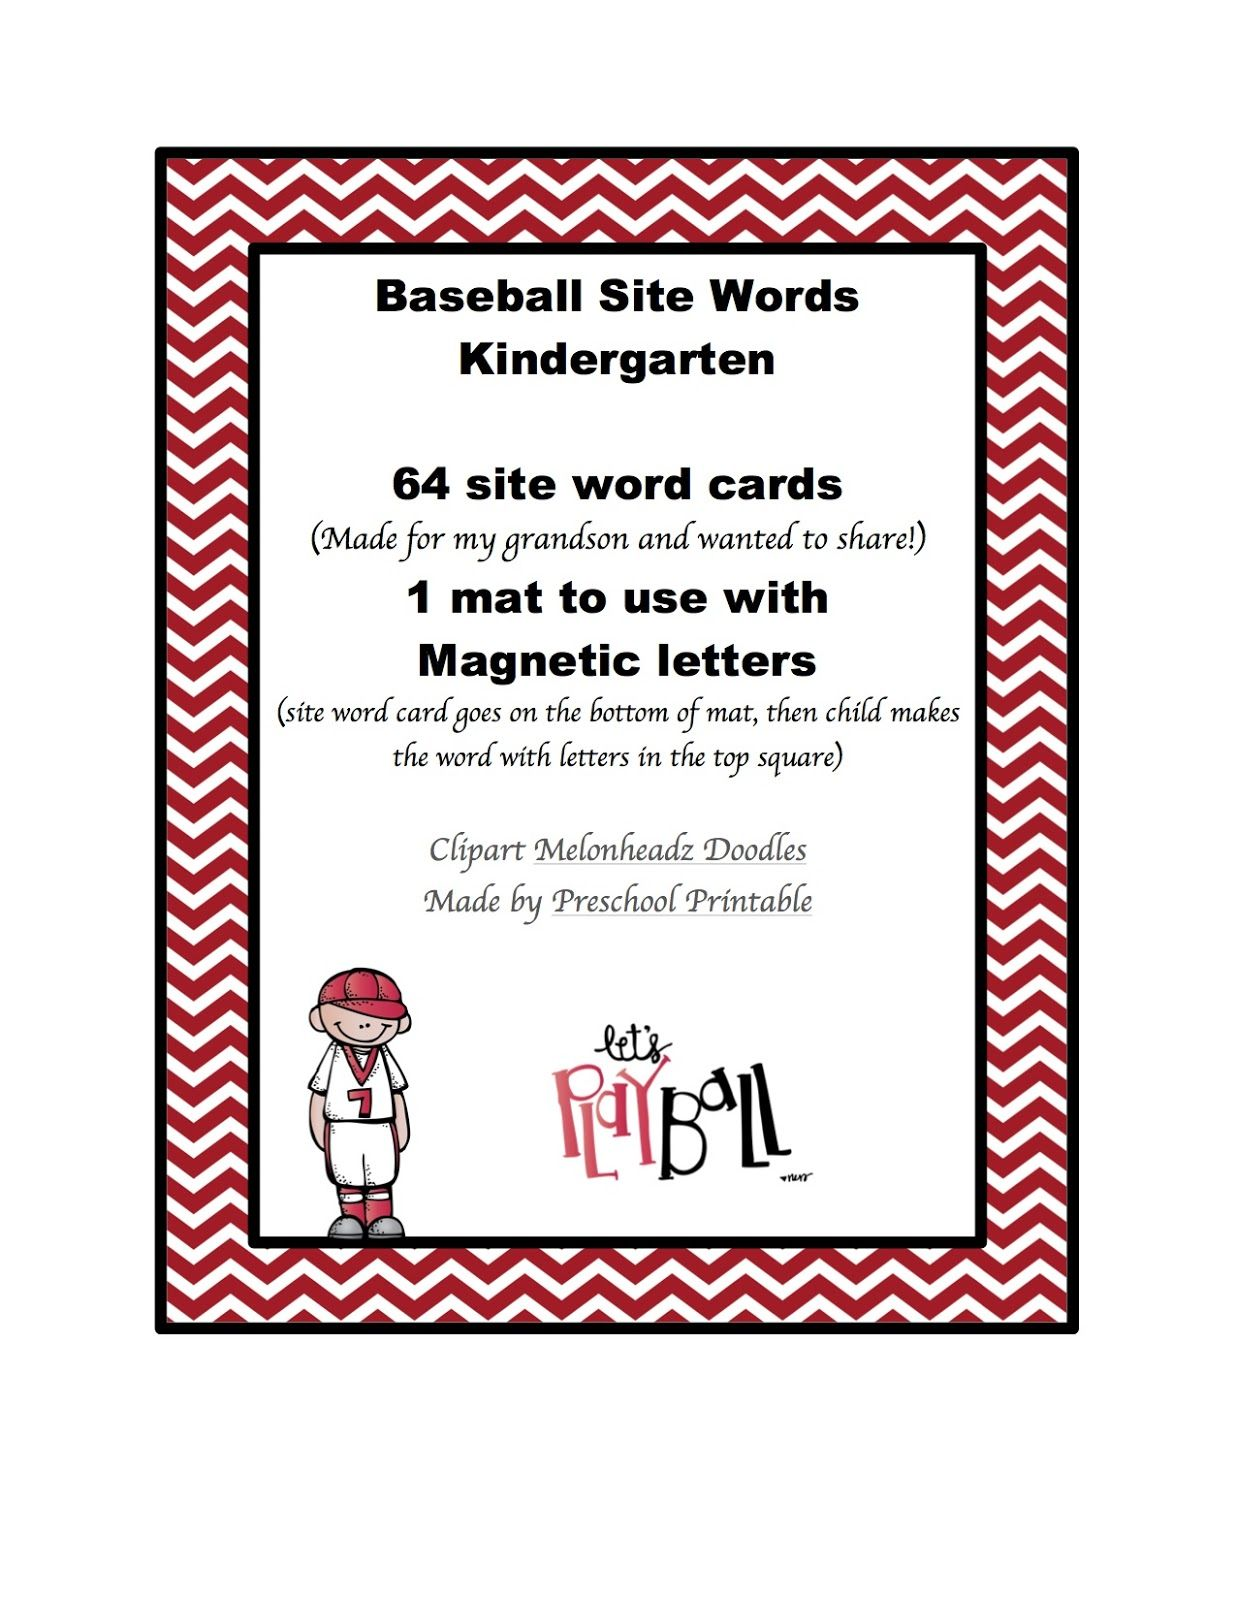 Preschool Printables Free Baseball Site Words For